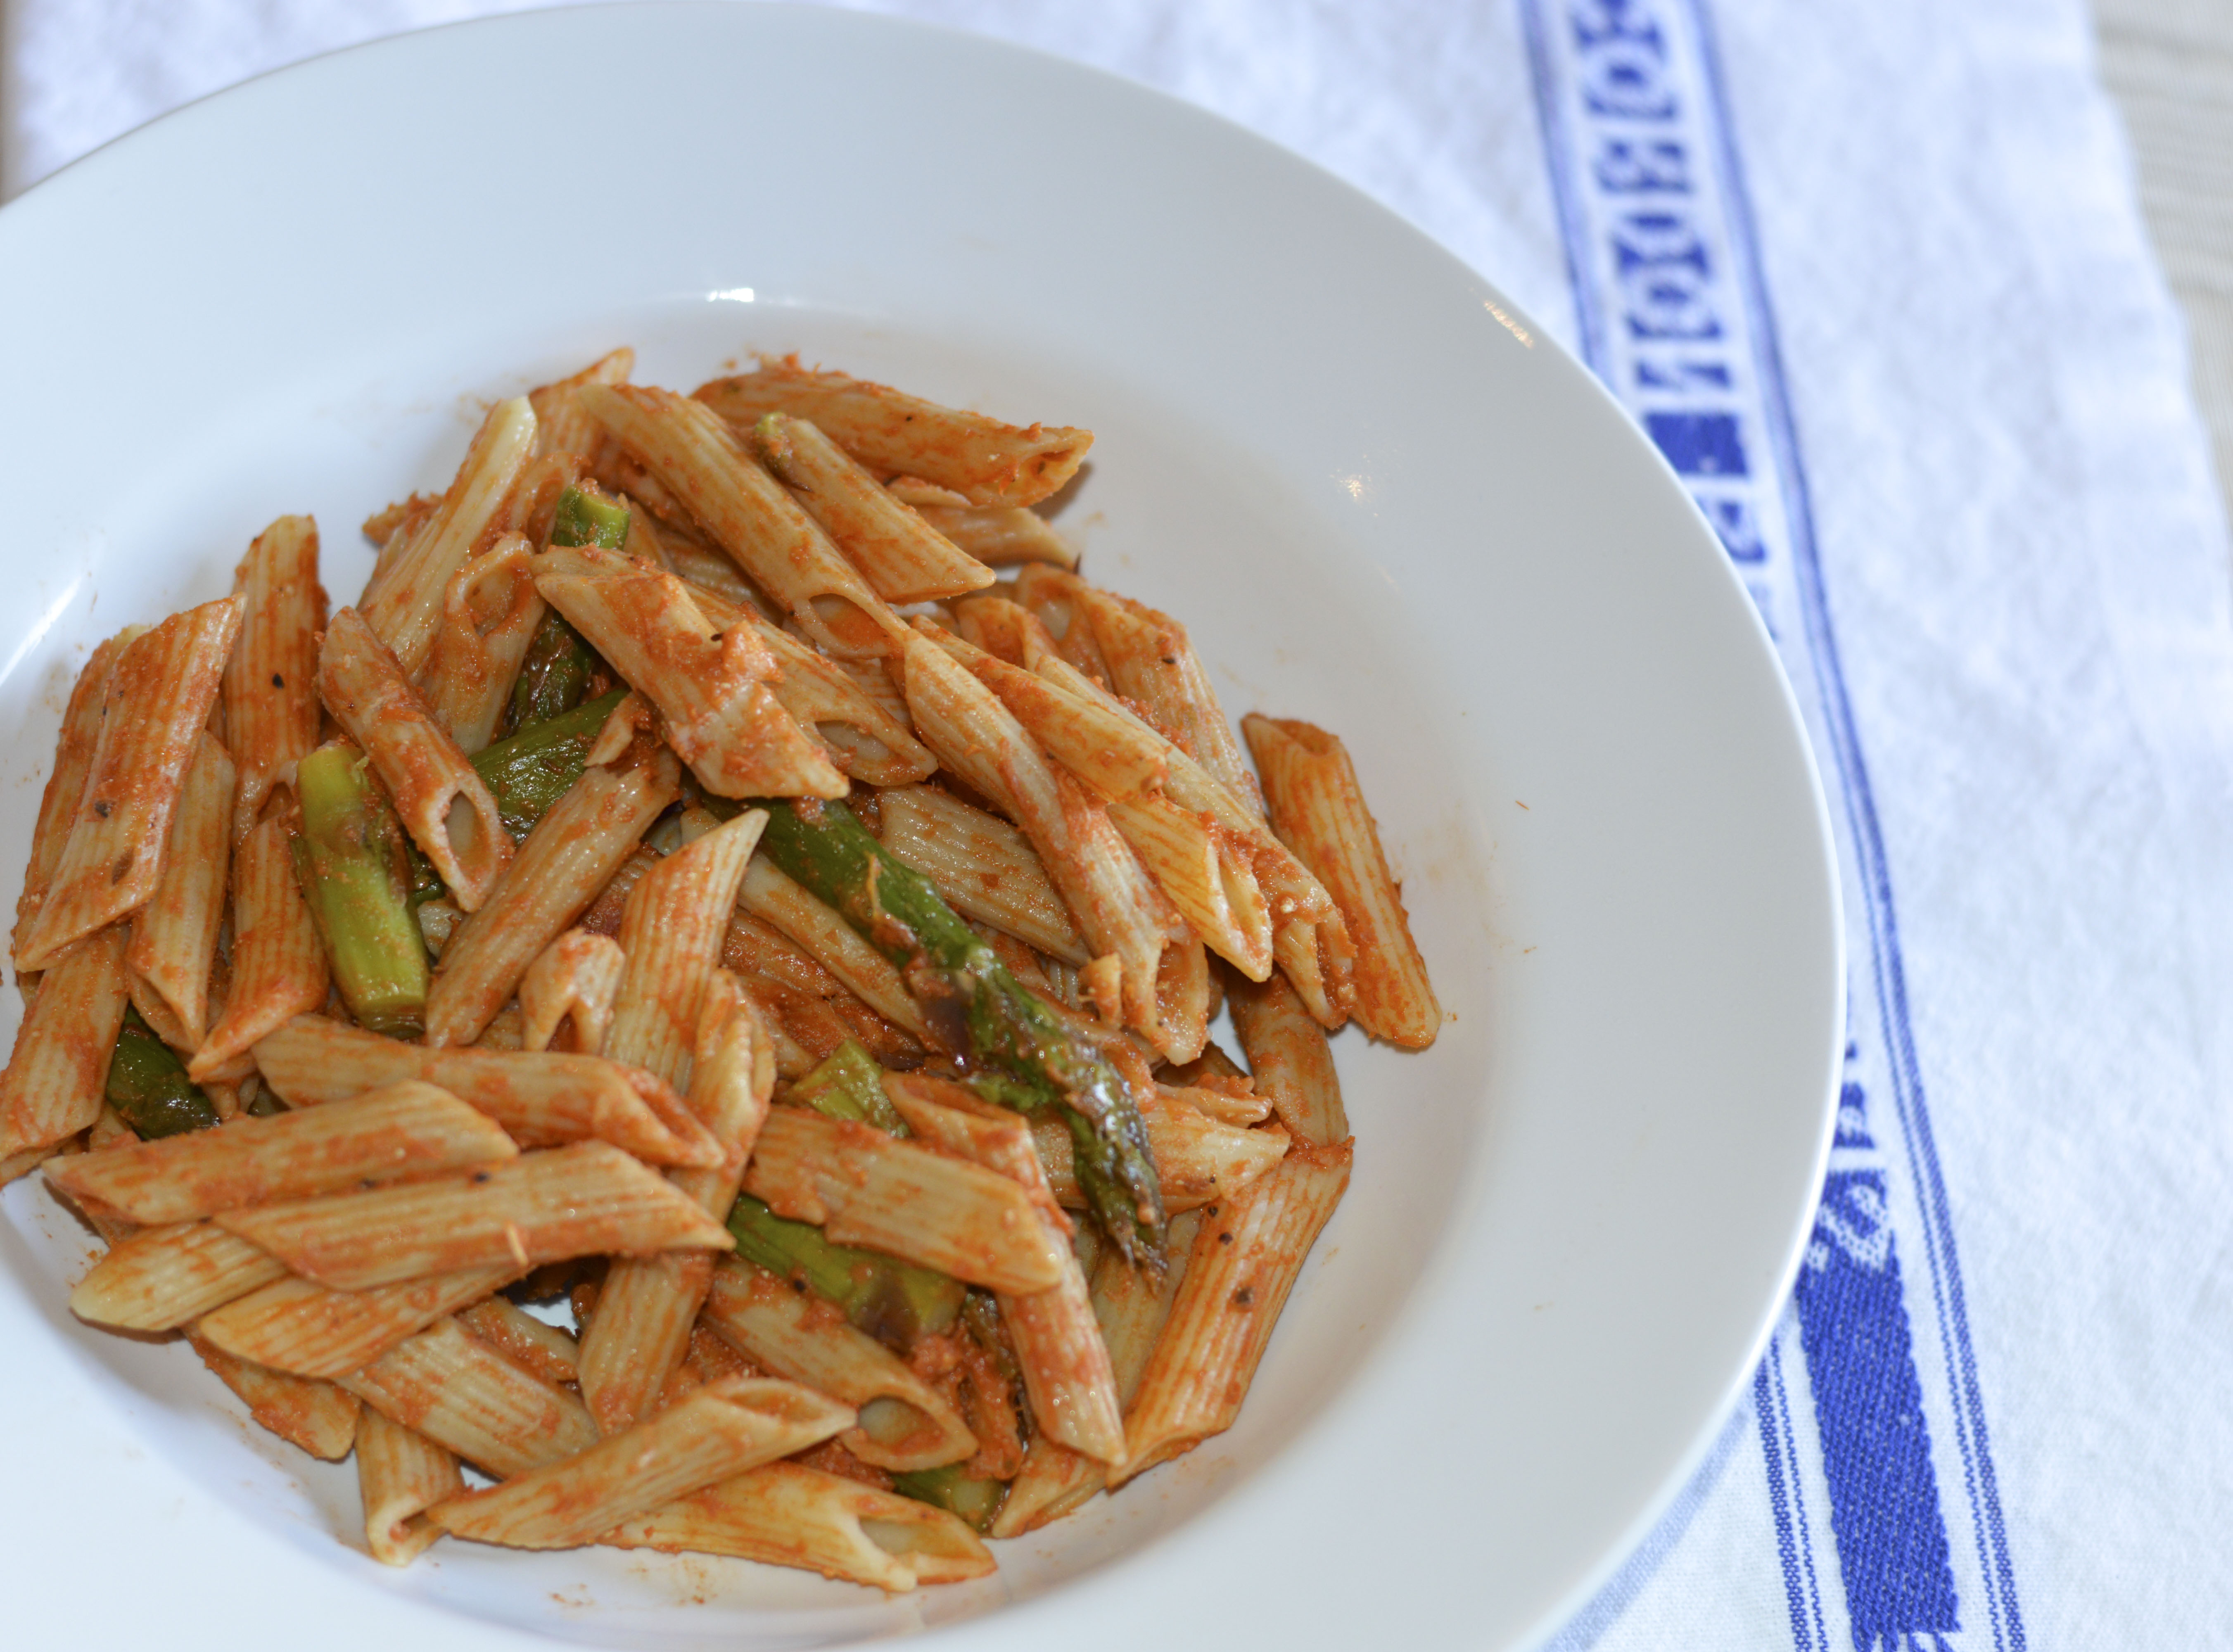 Penne in Vodka Sauce with Roasted Asparagus